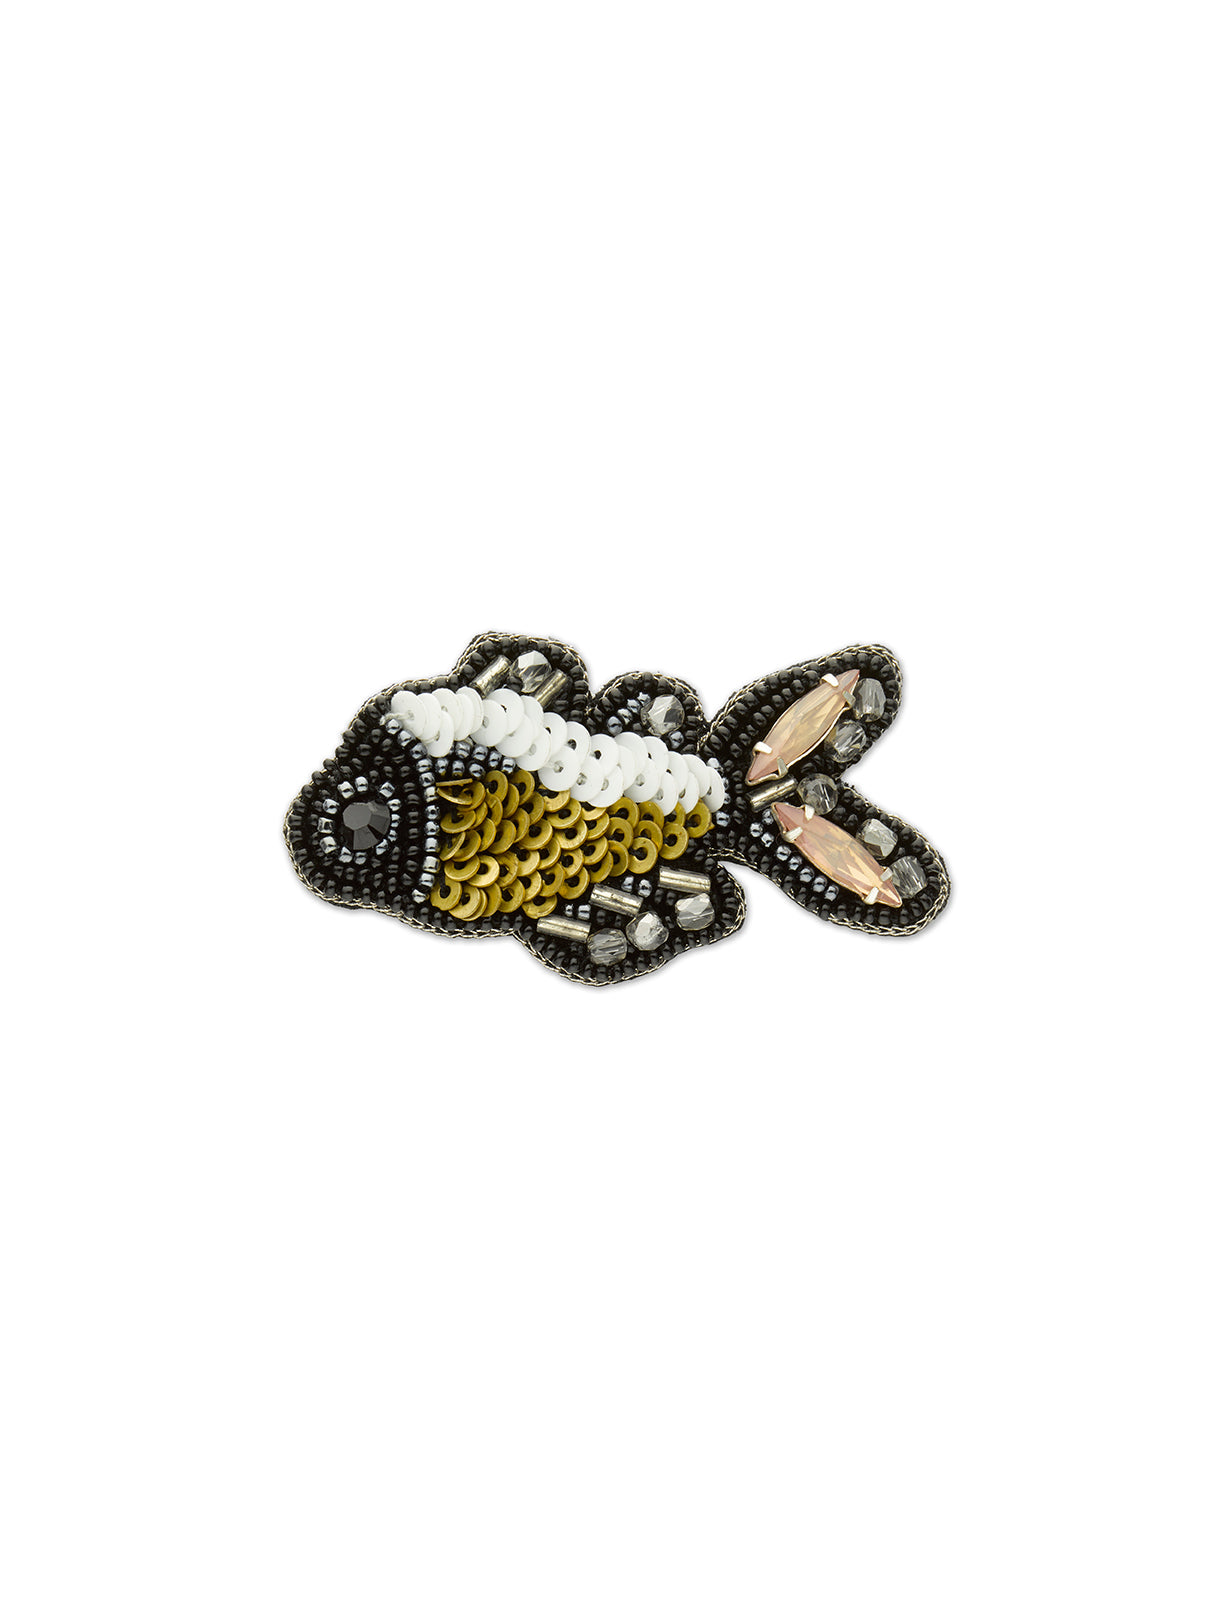 Black Fish Brooch